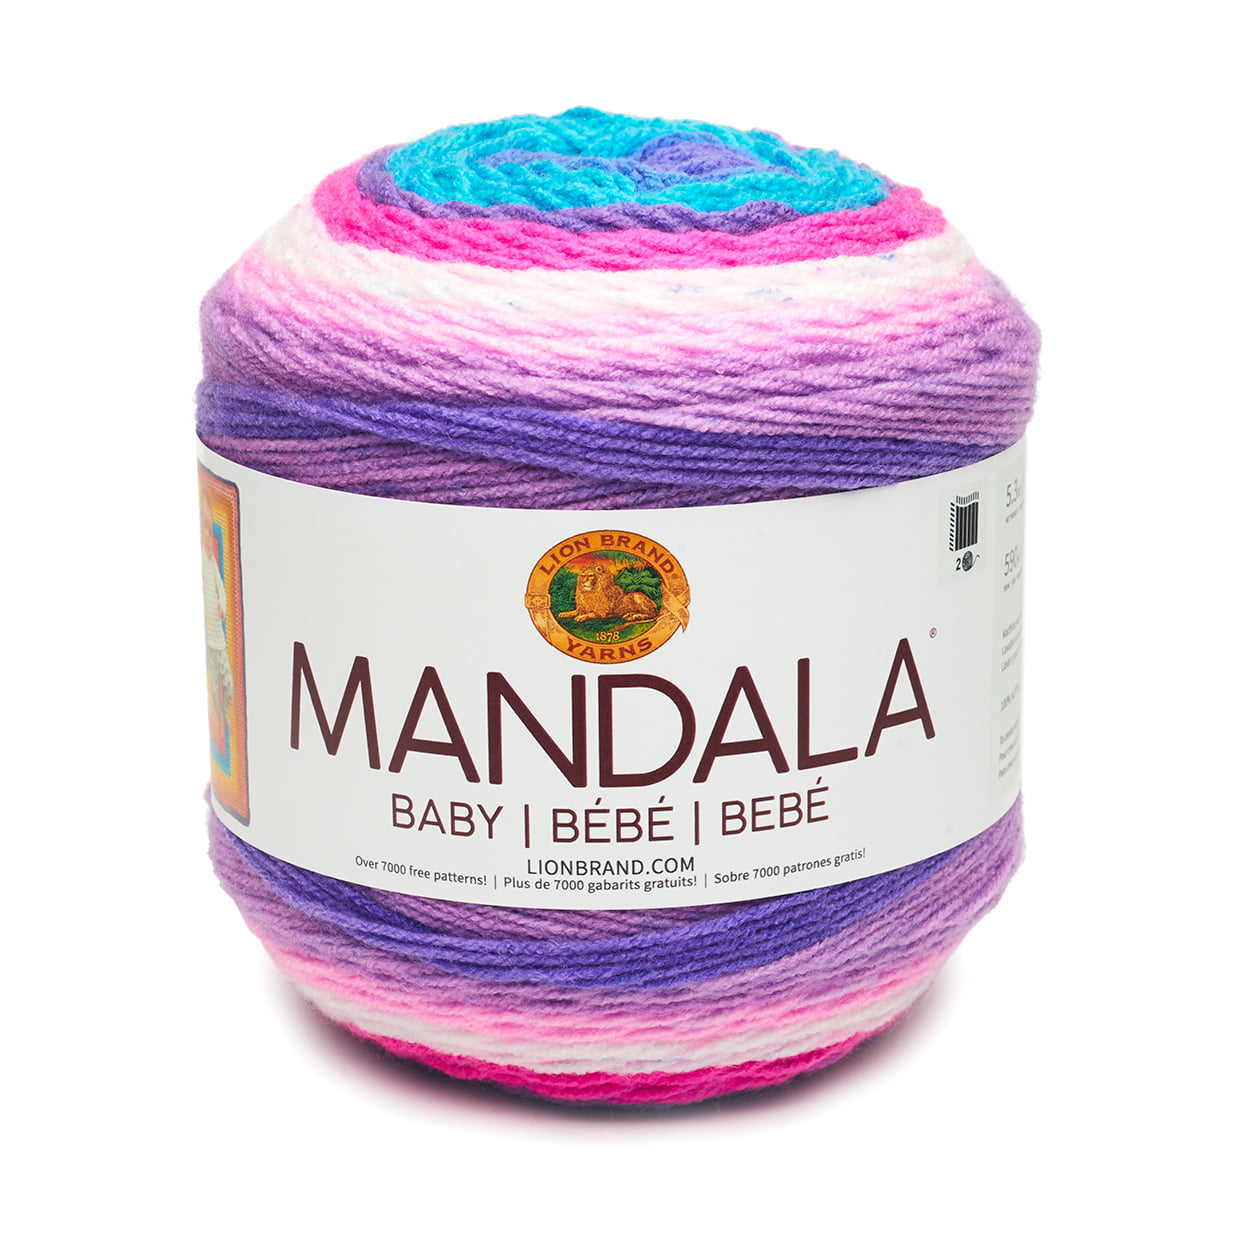 Lion Brand Yarns Mandala Acrylic Baby Unicorn Cloud Baby Yarn 1